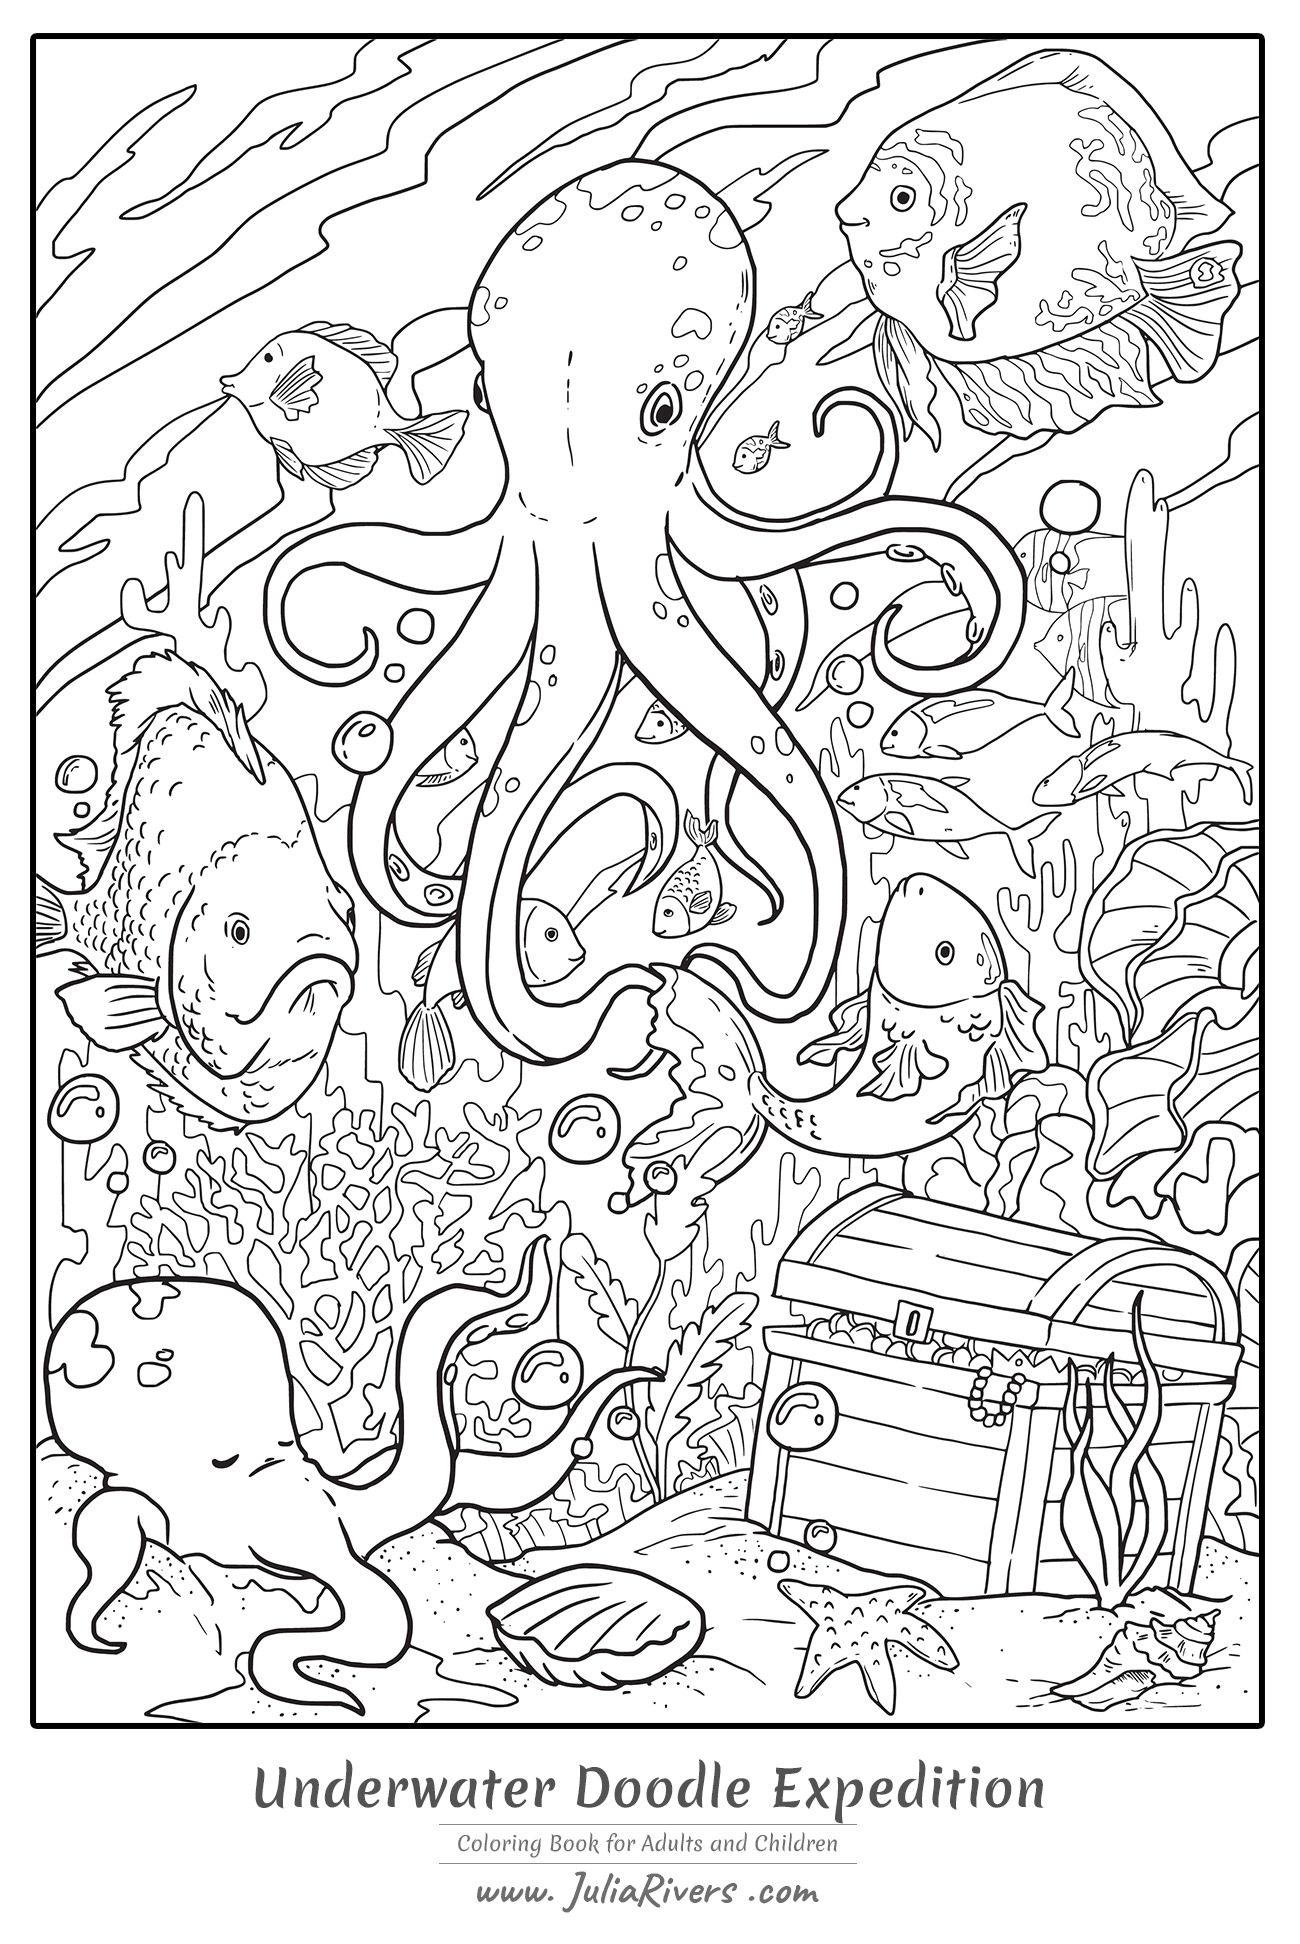 Underwater Doodle Expedition Magnificent Coloring Page Representing A Giant Octopus At The Bot Detailed Coloring Pages Coloring Pages Animal Coloring Pages